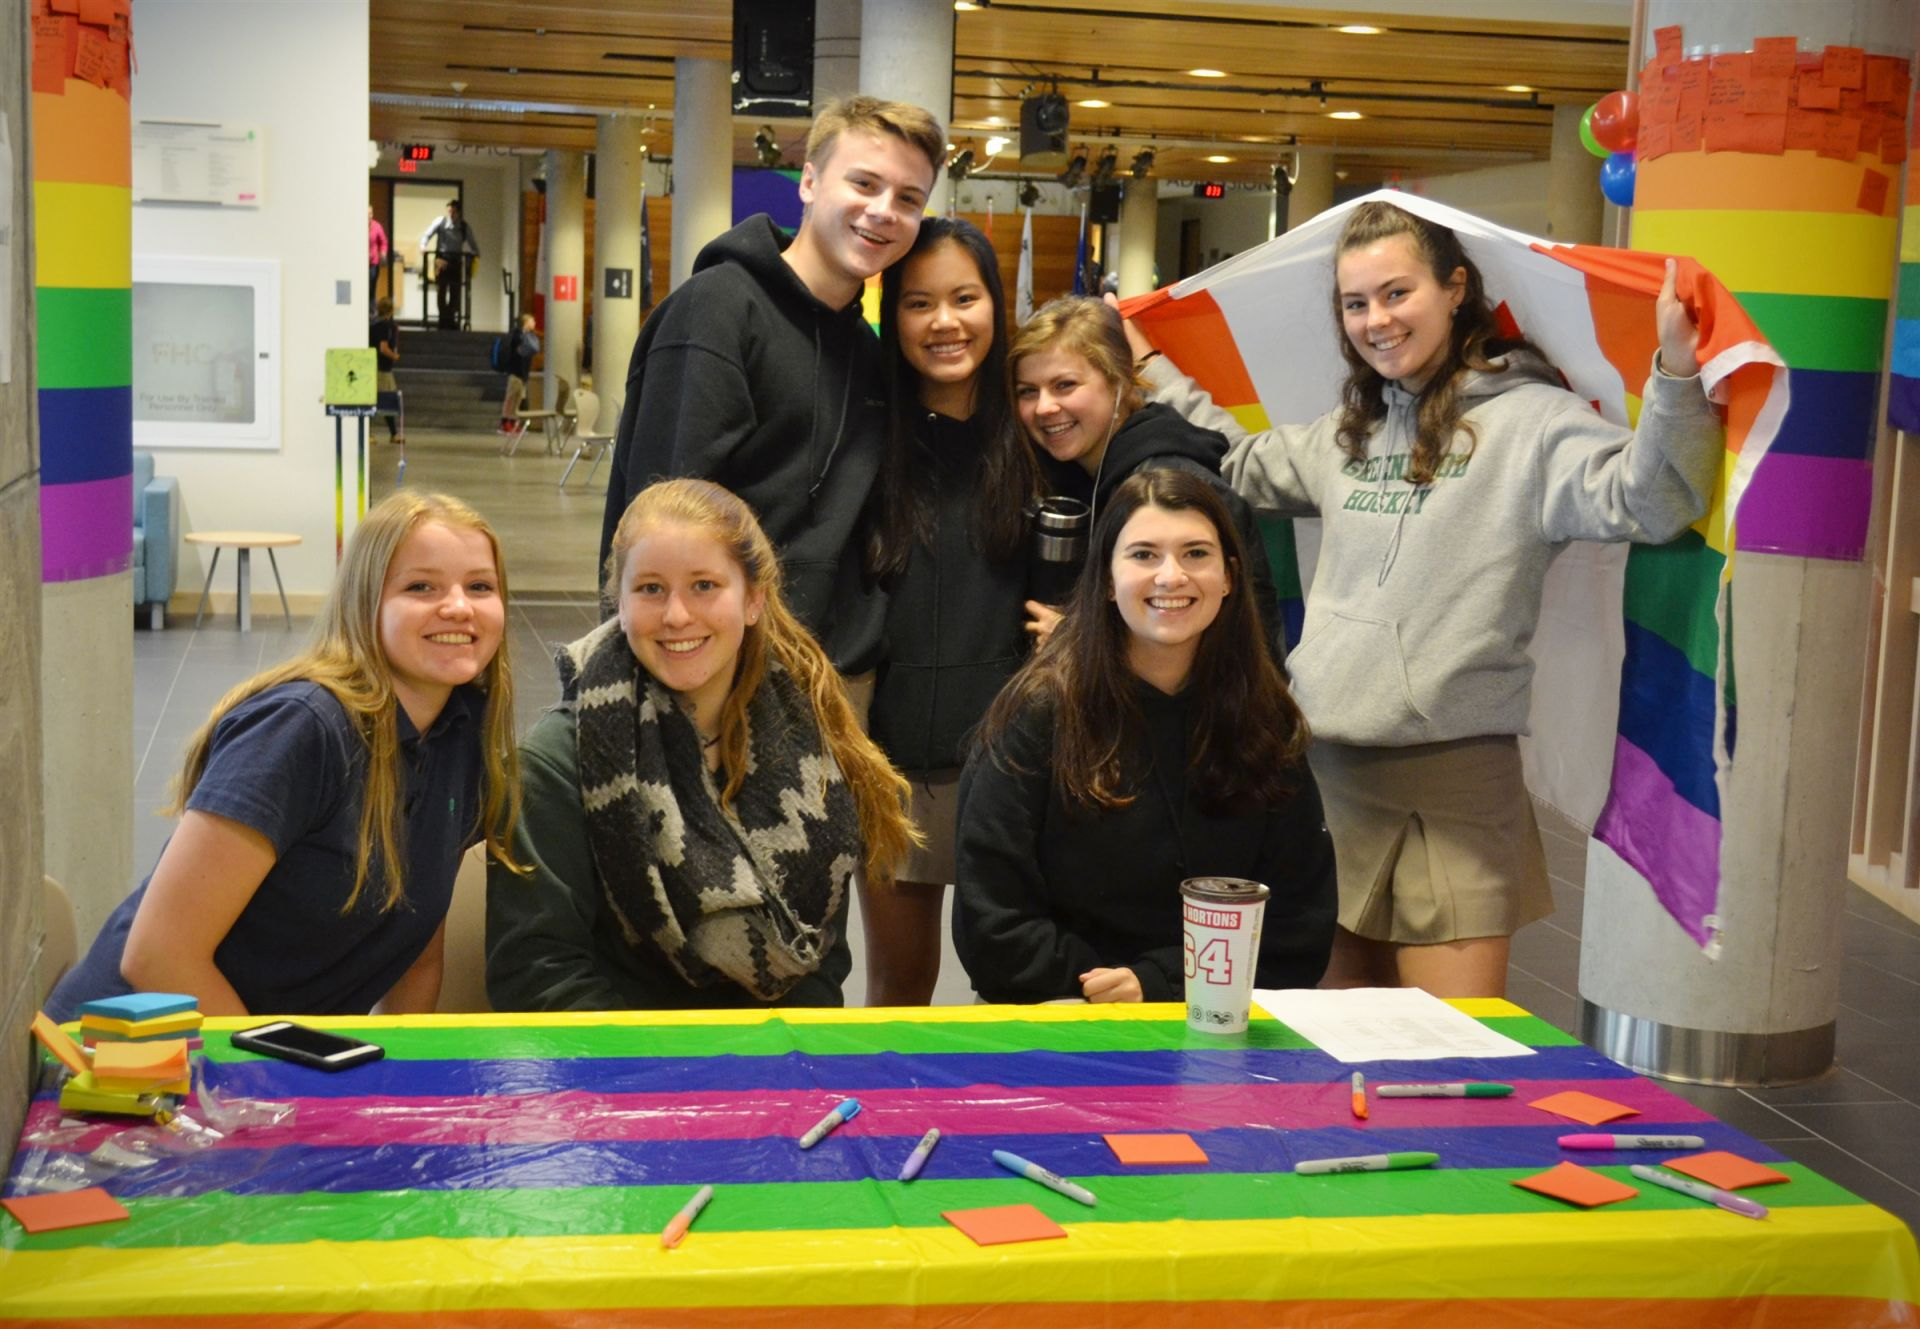 Our Diversity Committee is just one example of the many student-led groups and clubs at Greenwood.